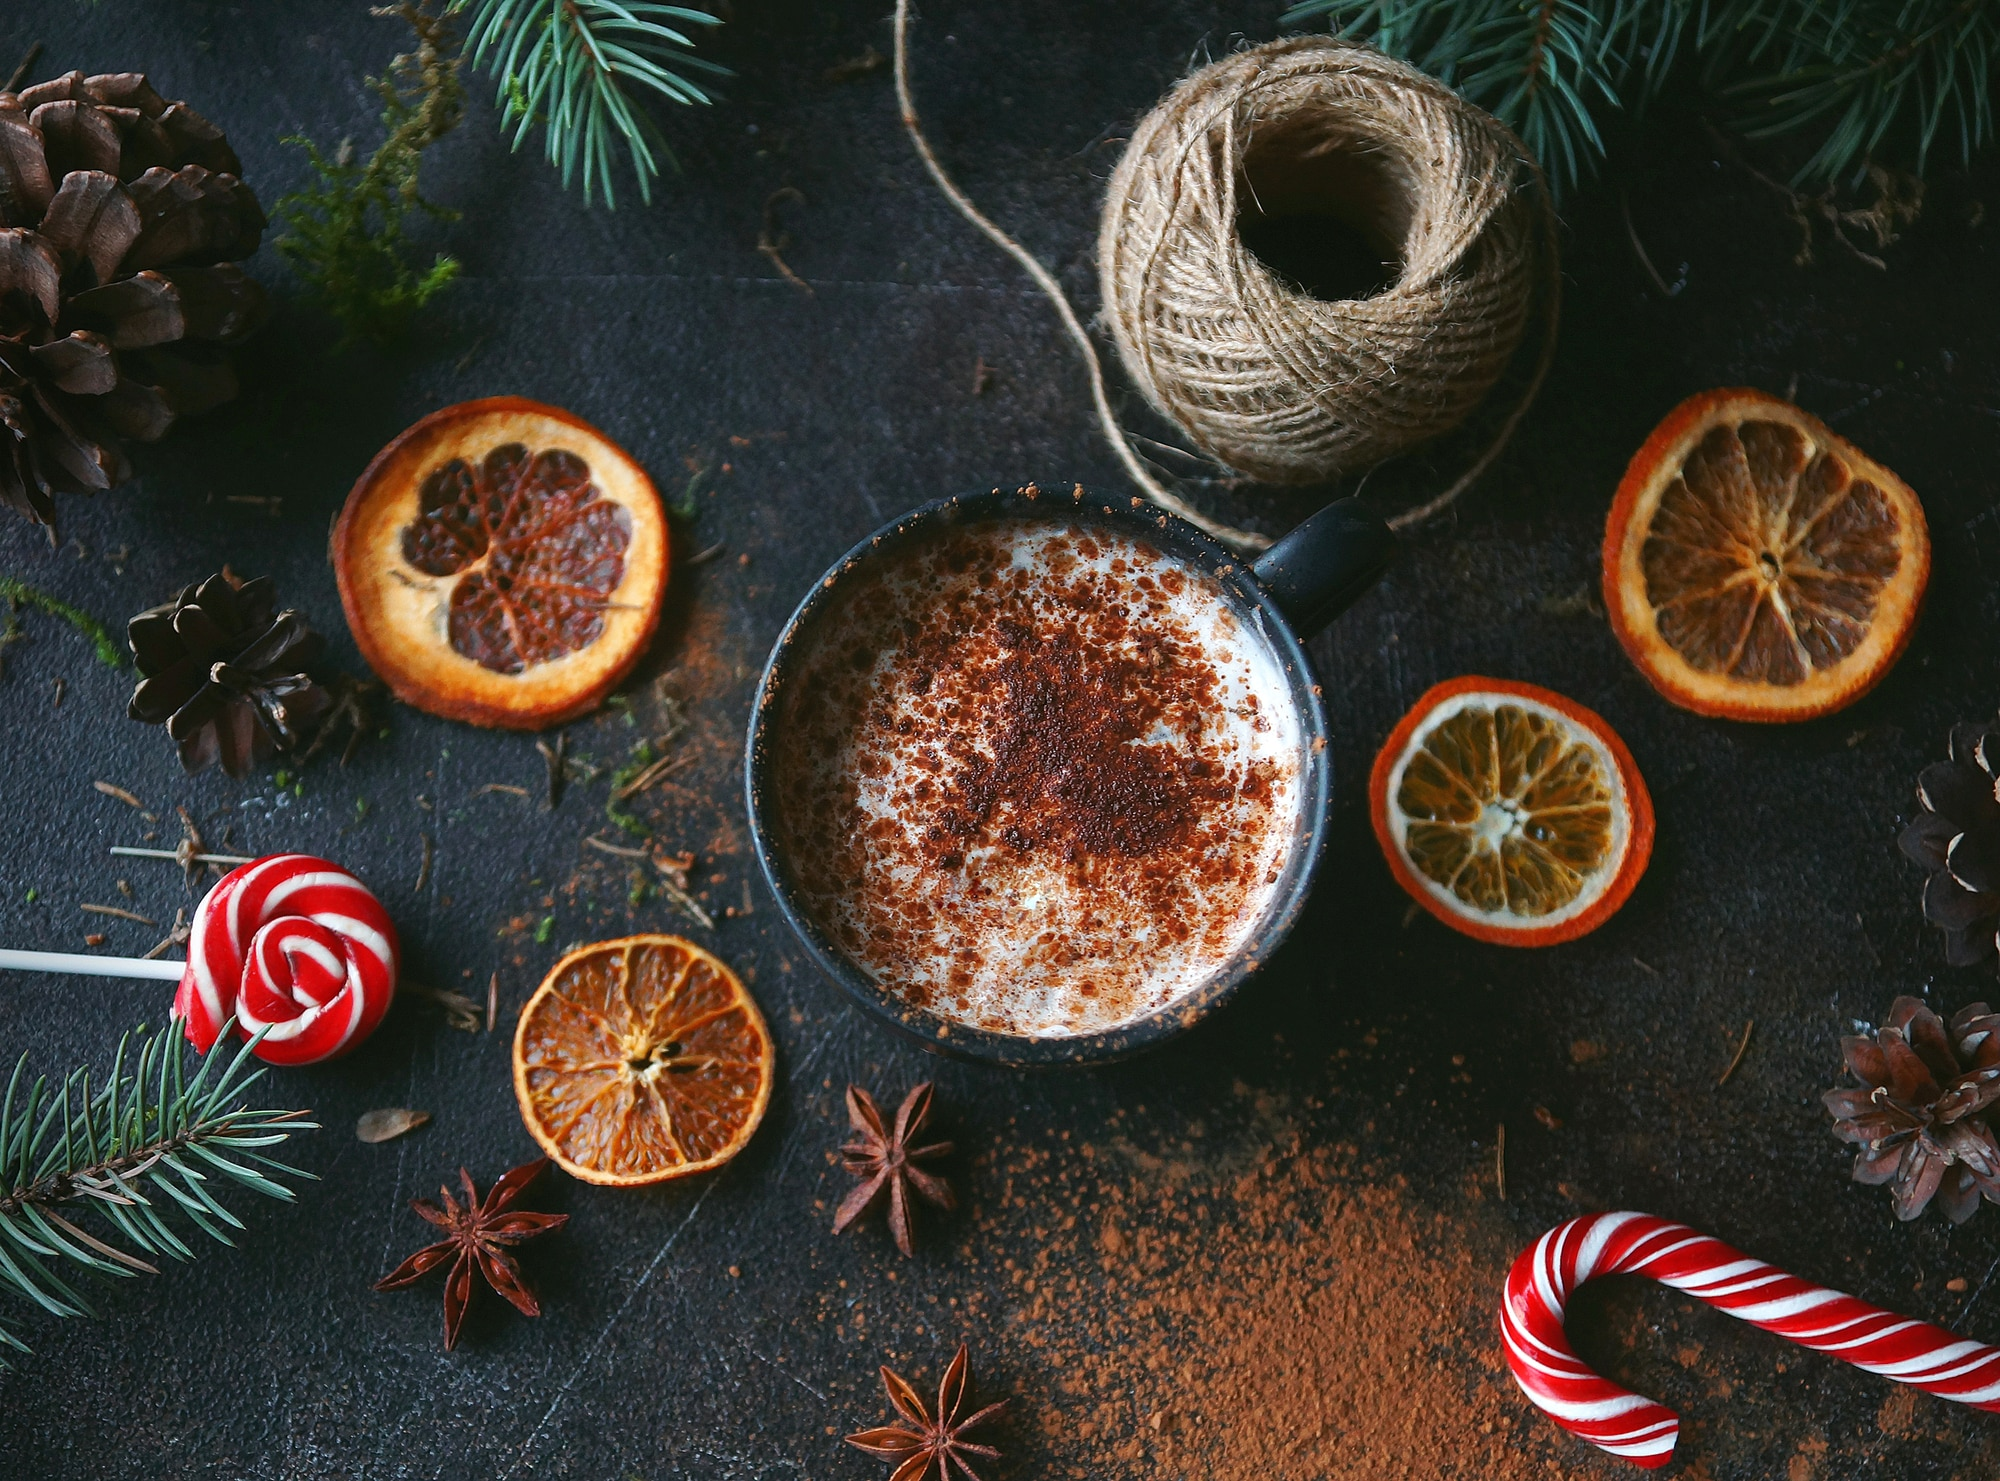 Christmas hot chocolate in a black cup with caramelized oranges, fir branches and candy cane on dark background, Selective focus